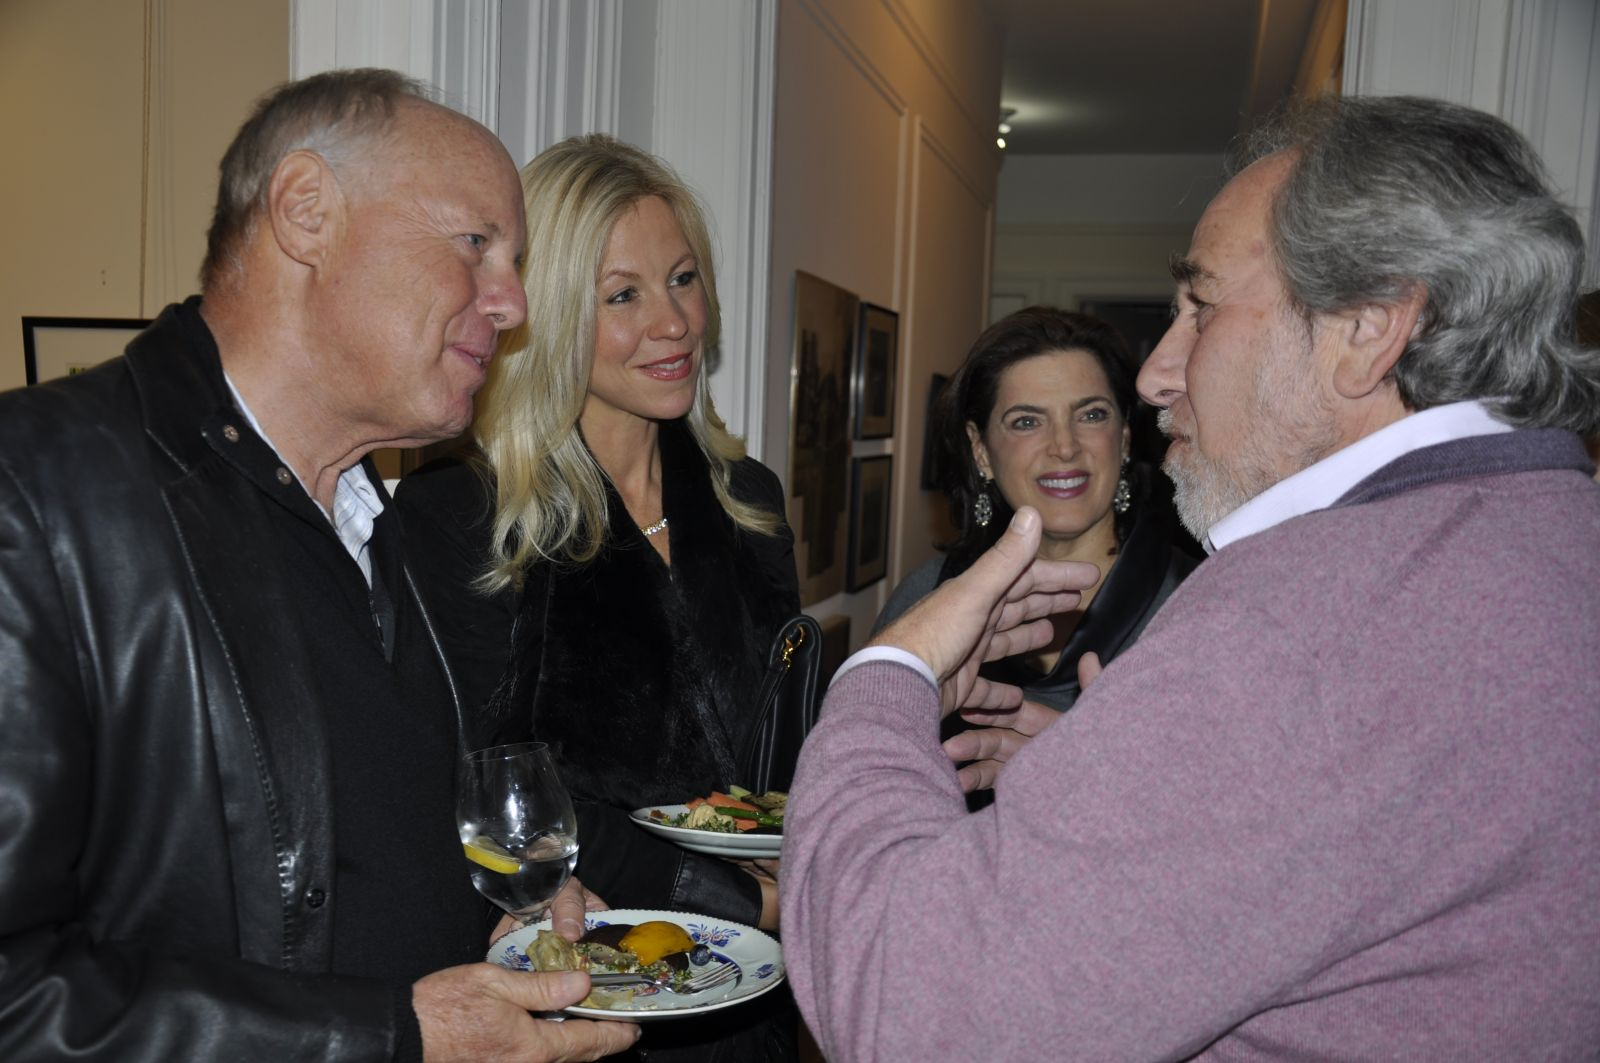 Bruce with Guests